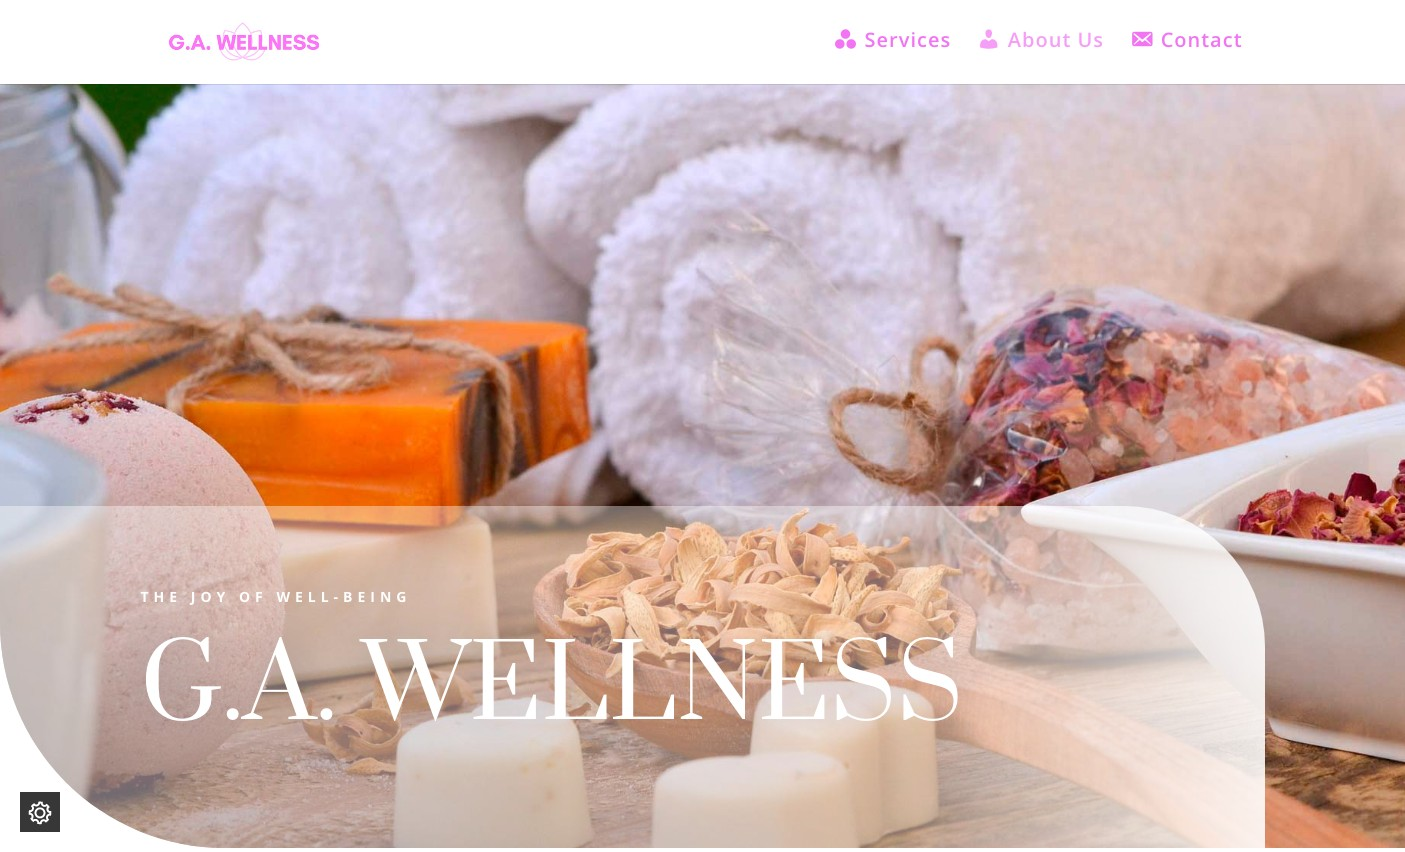 G.A. Wellness Massage, Beauty and Personal Hygiene services